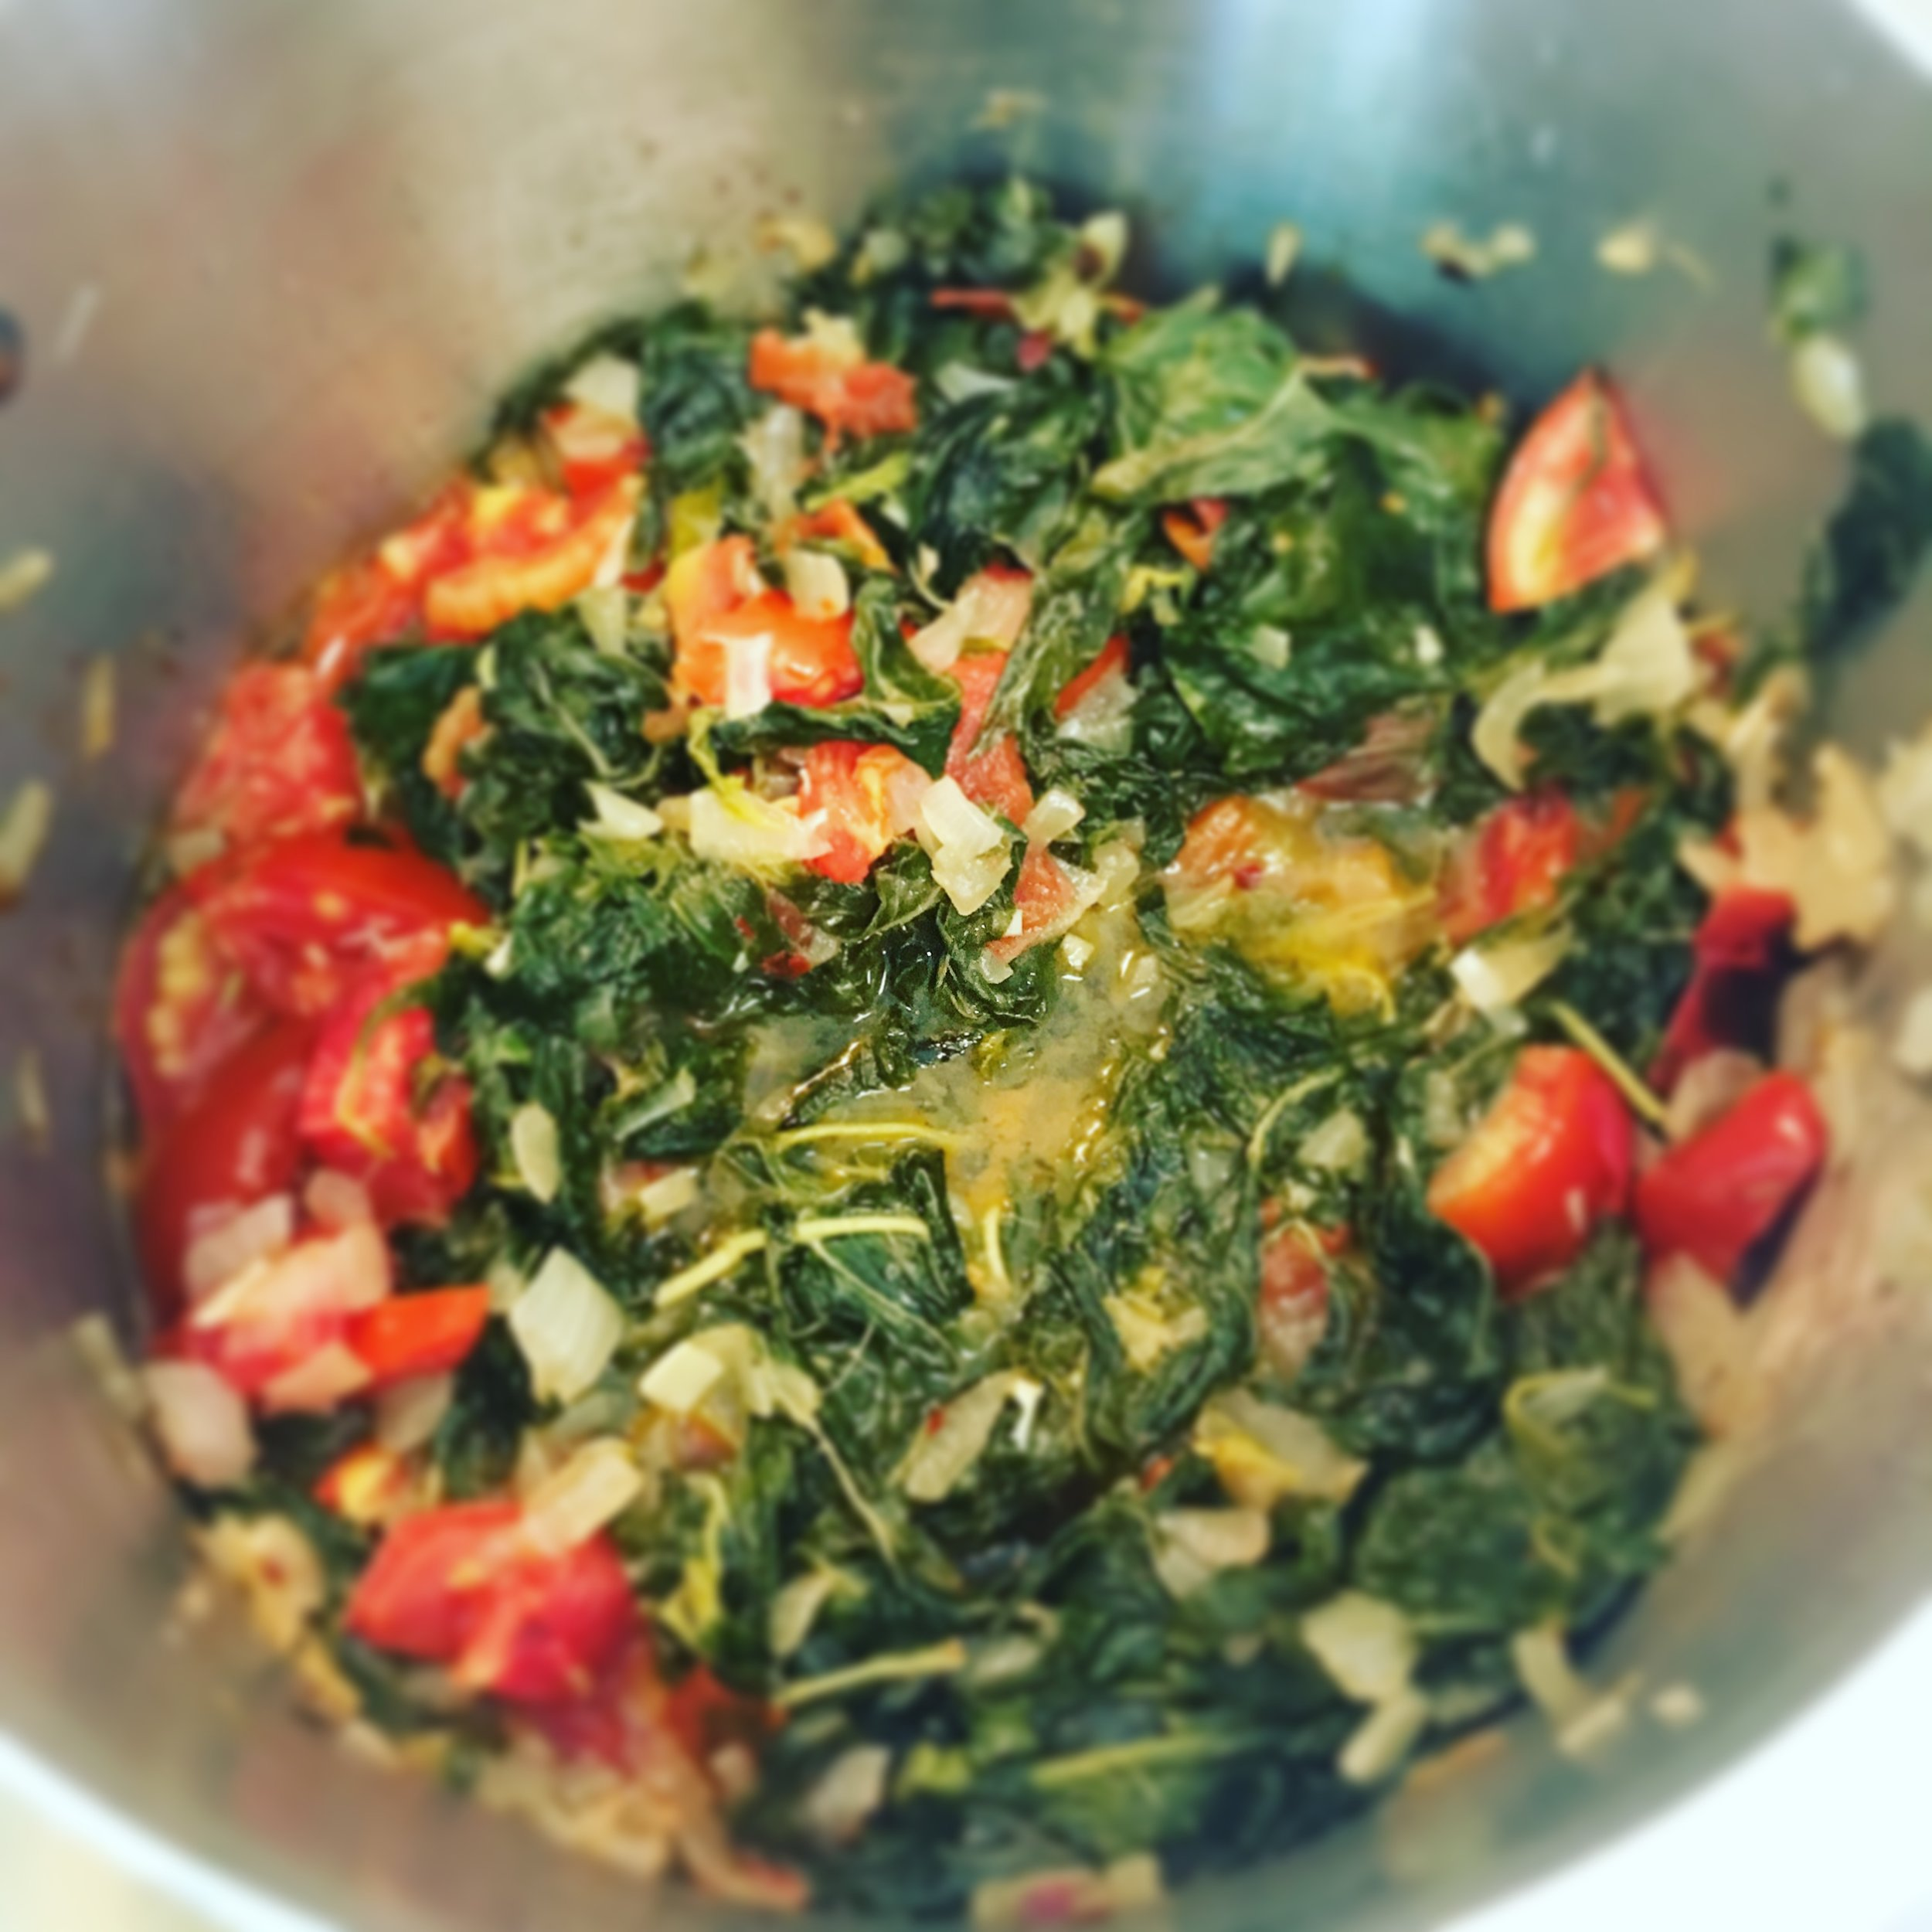 Spinach is cooked with onions, garlic, tomatoes, red pepper flakes, salt and pepper.